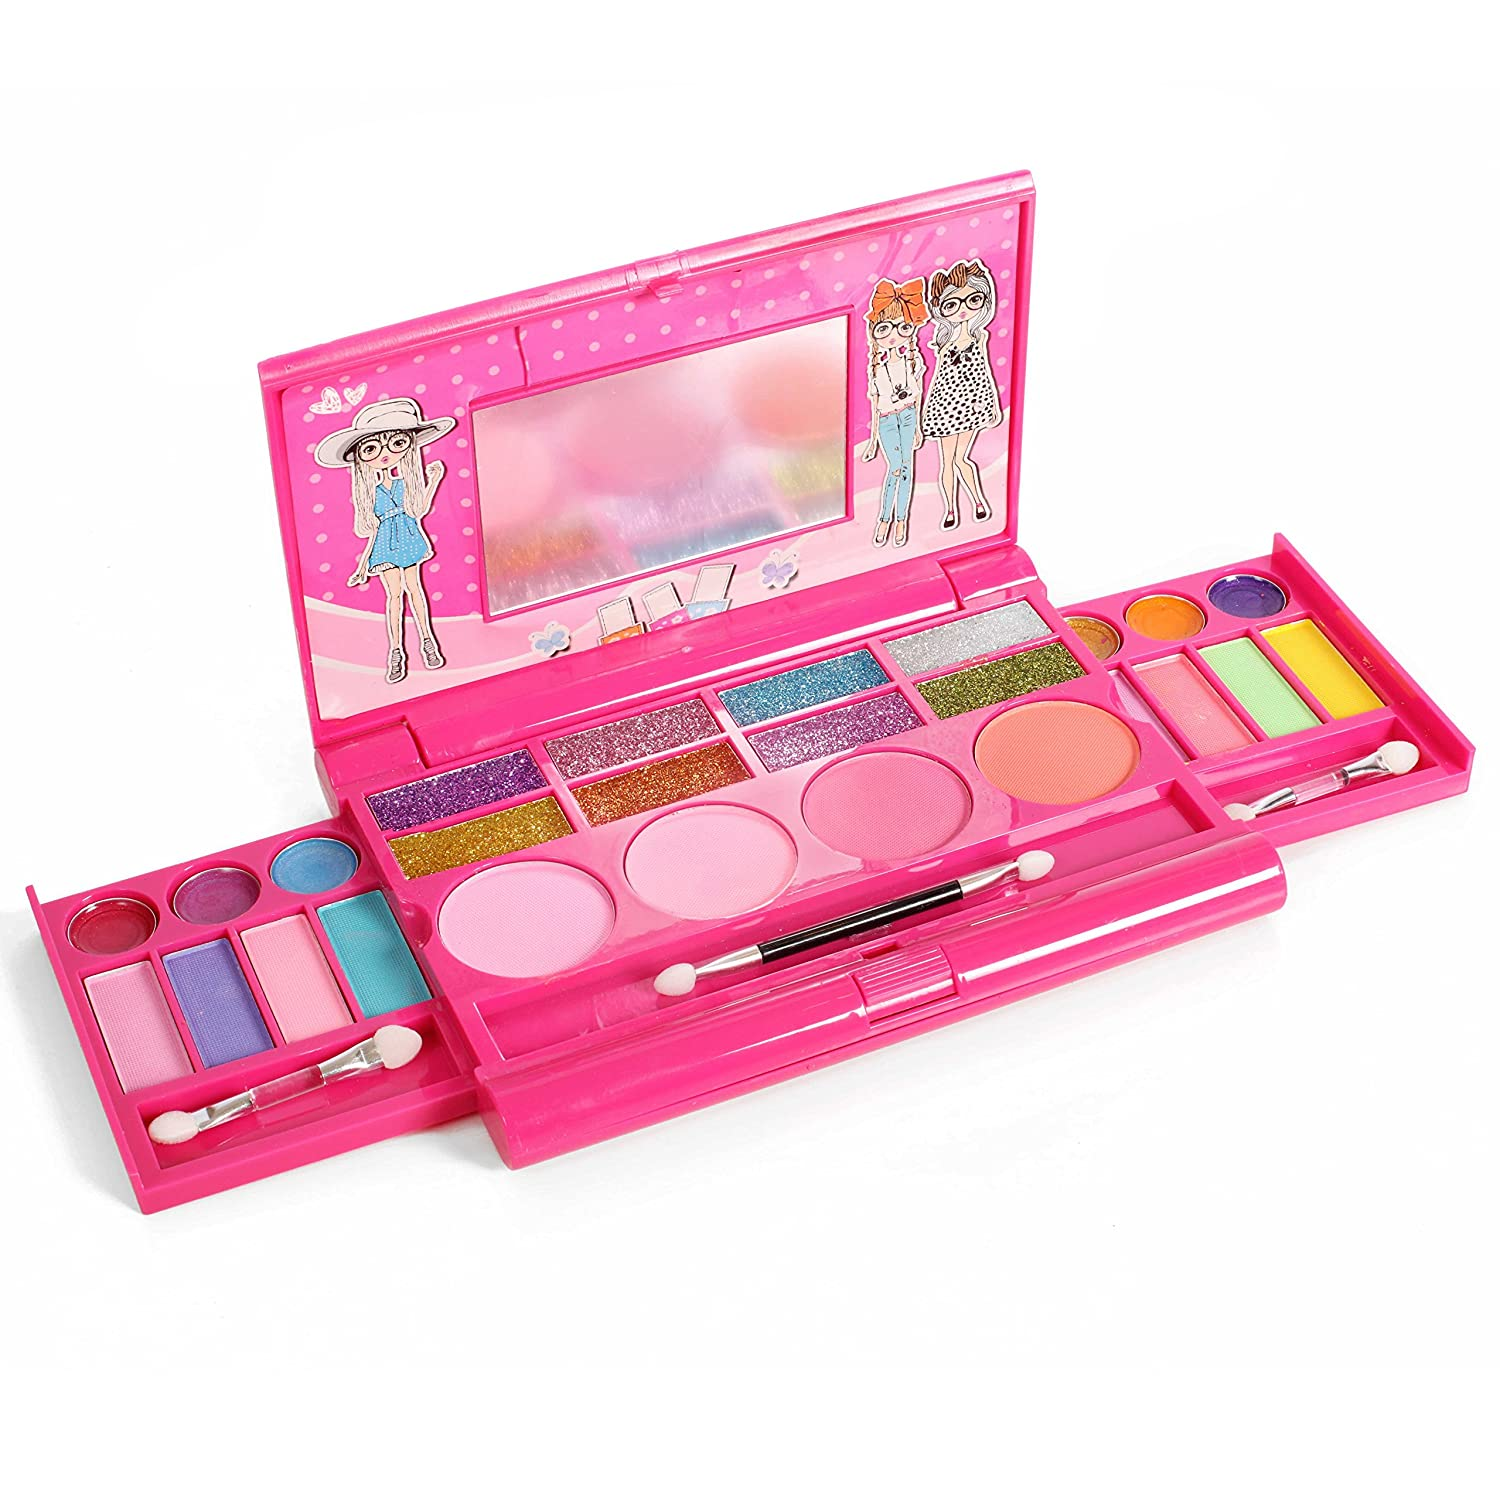 IQ Toys Princess Girl's All-in-One Deluxe Makeup Palette with Mirror